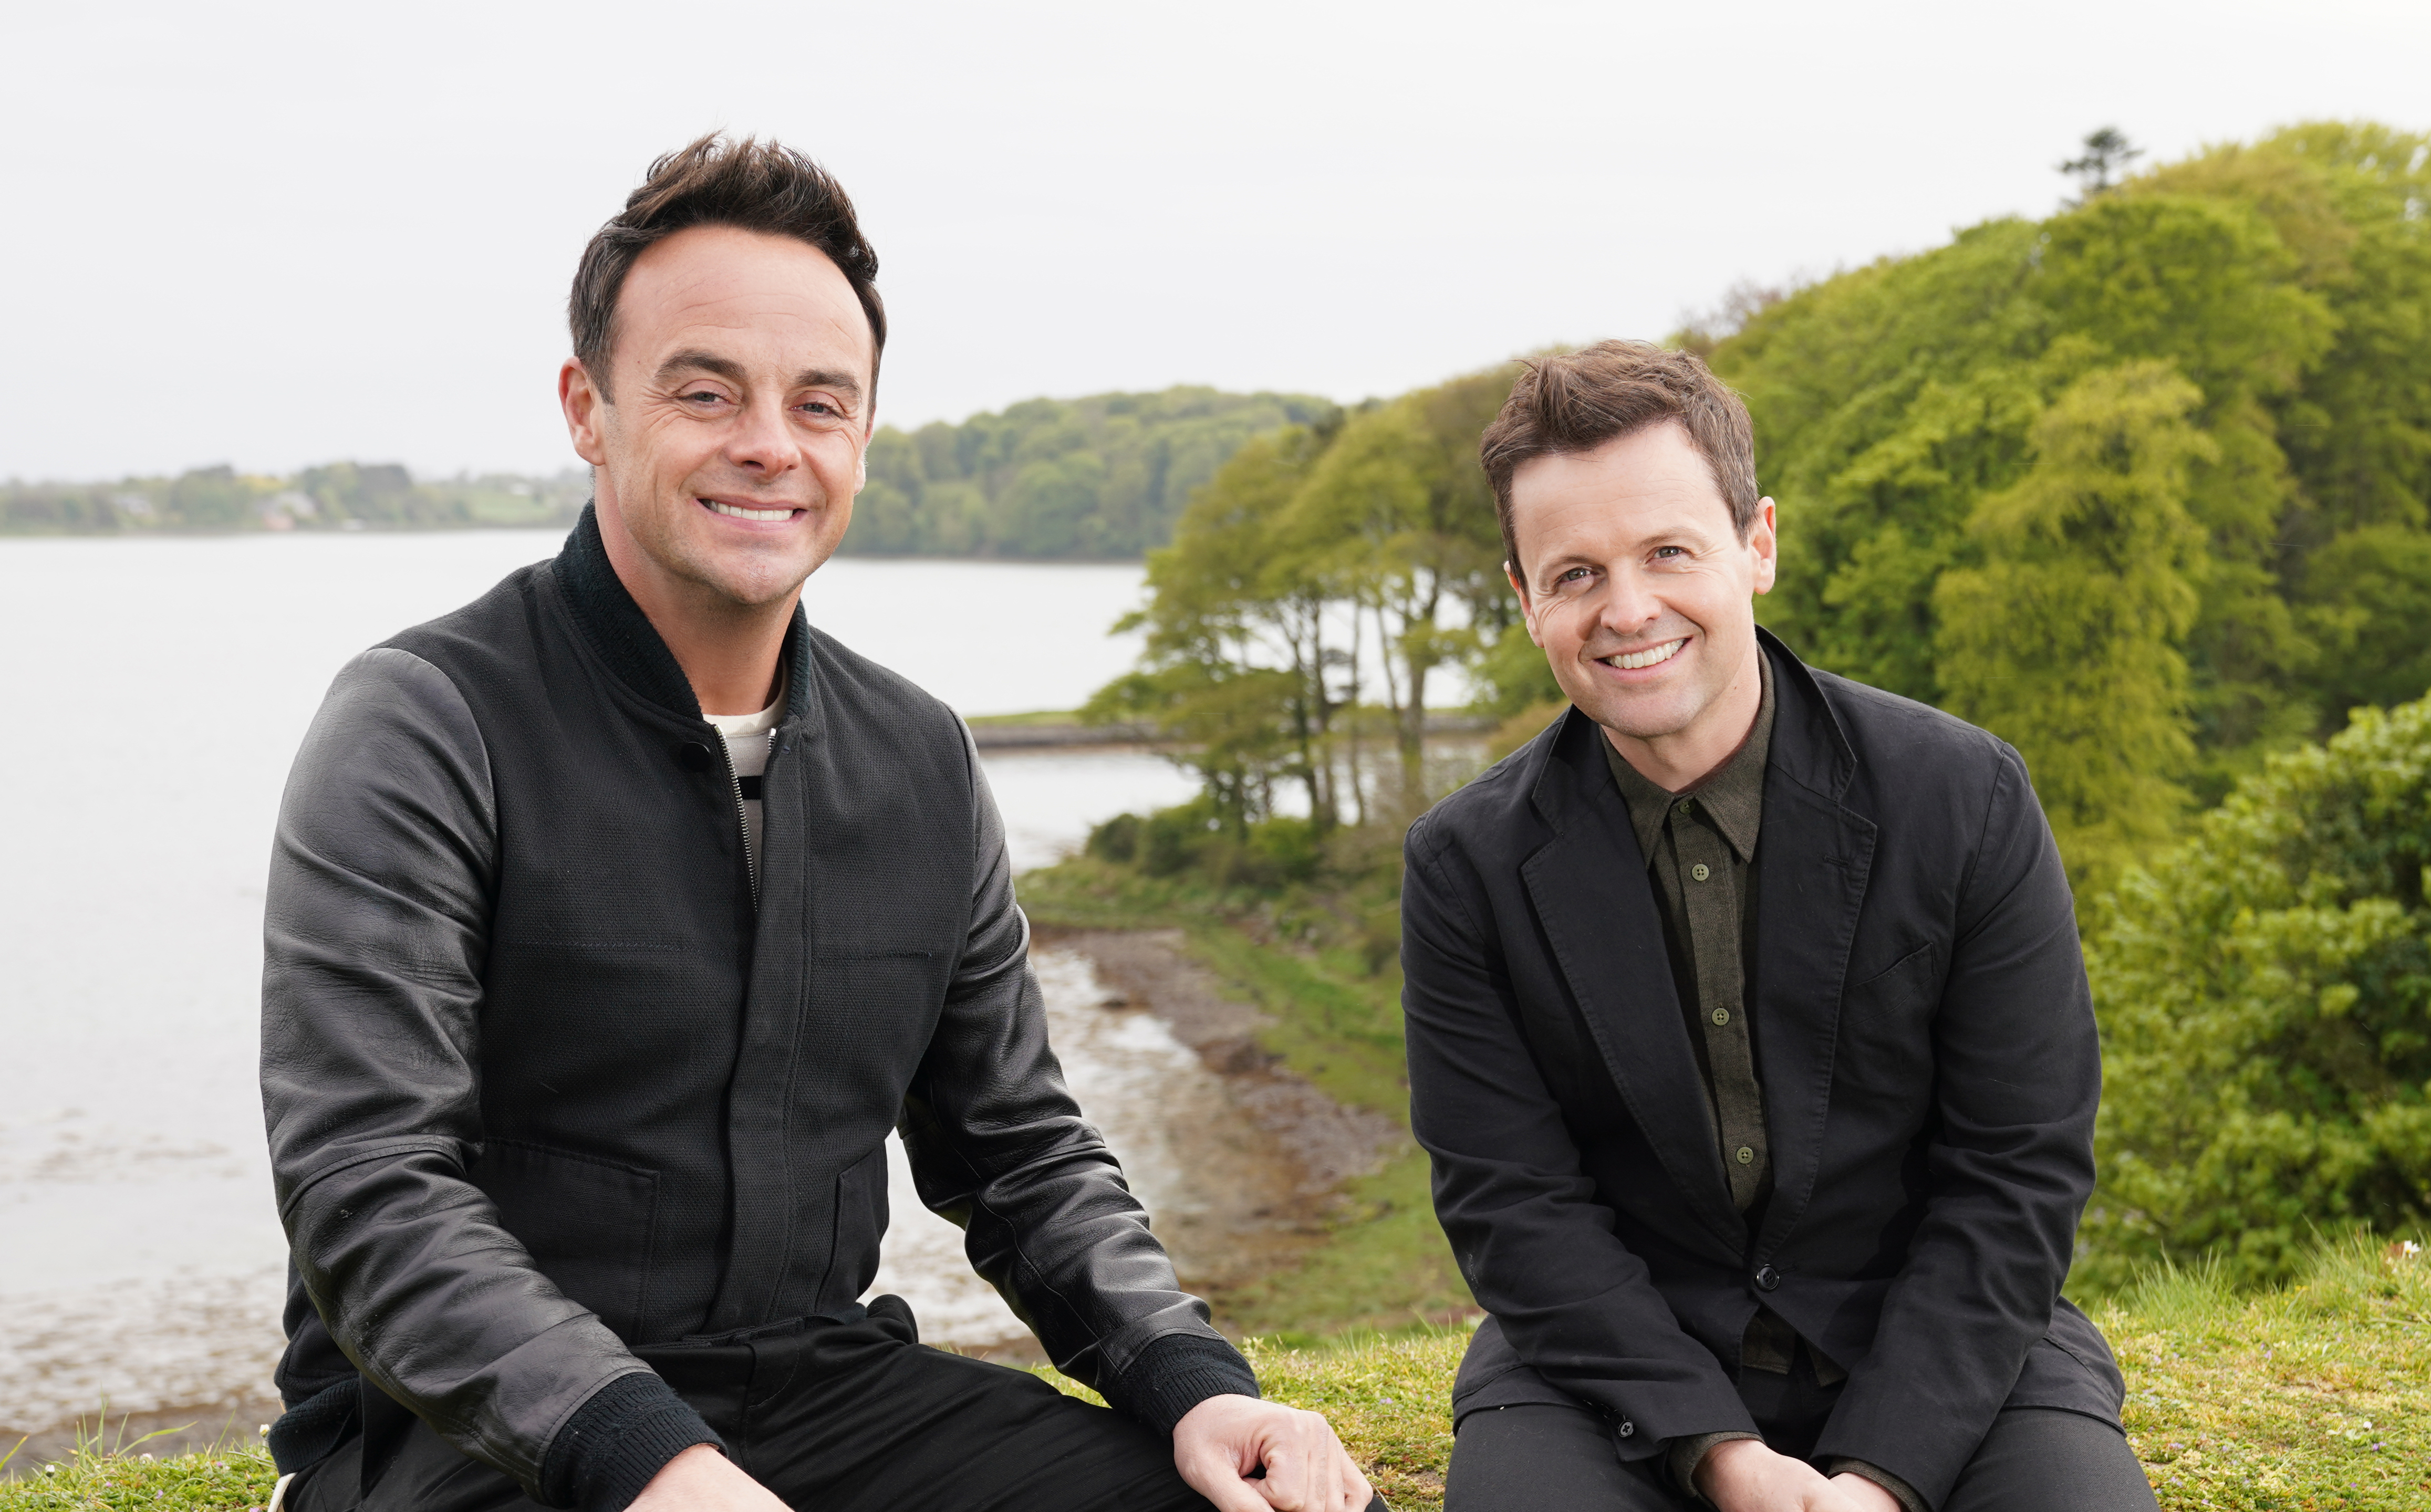 Fans convinced Ant and Dec are related after emotional start to DNA documentary